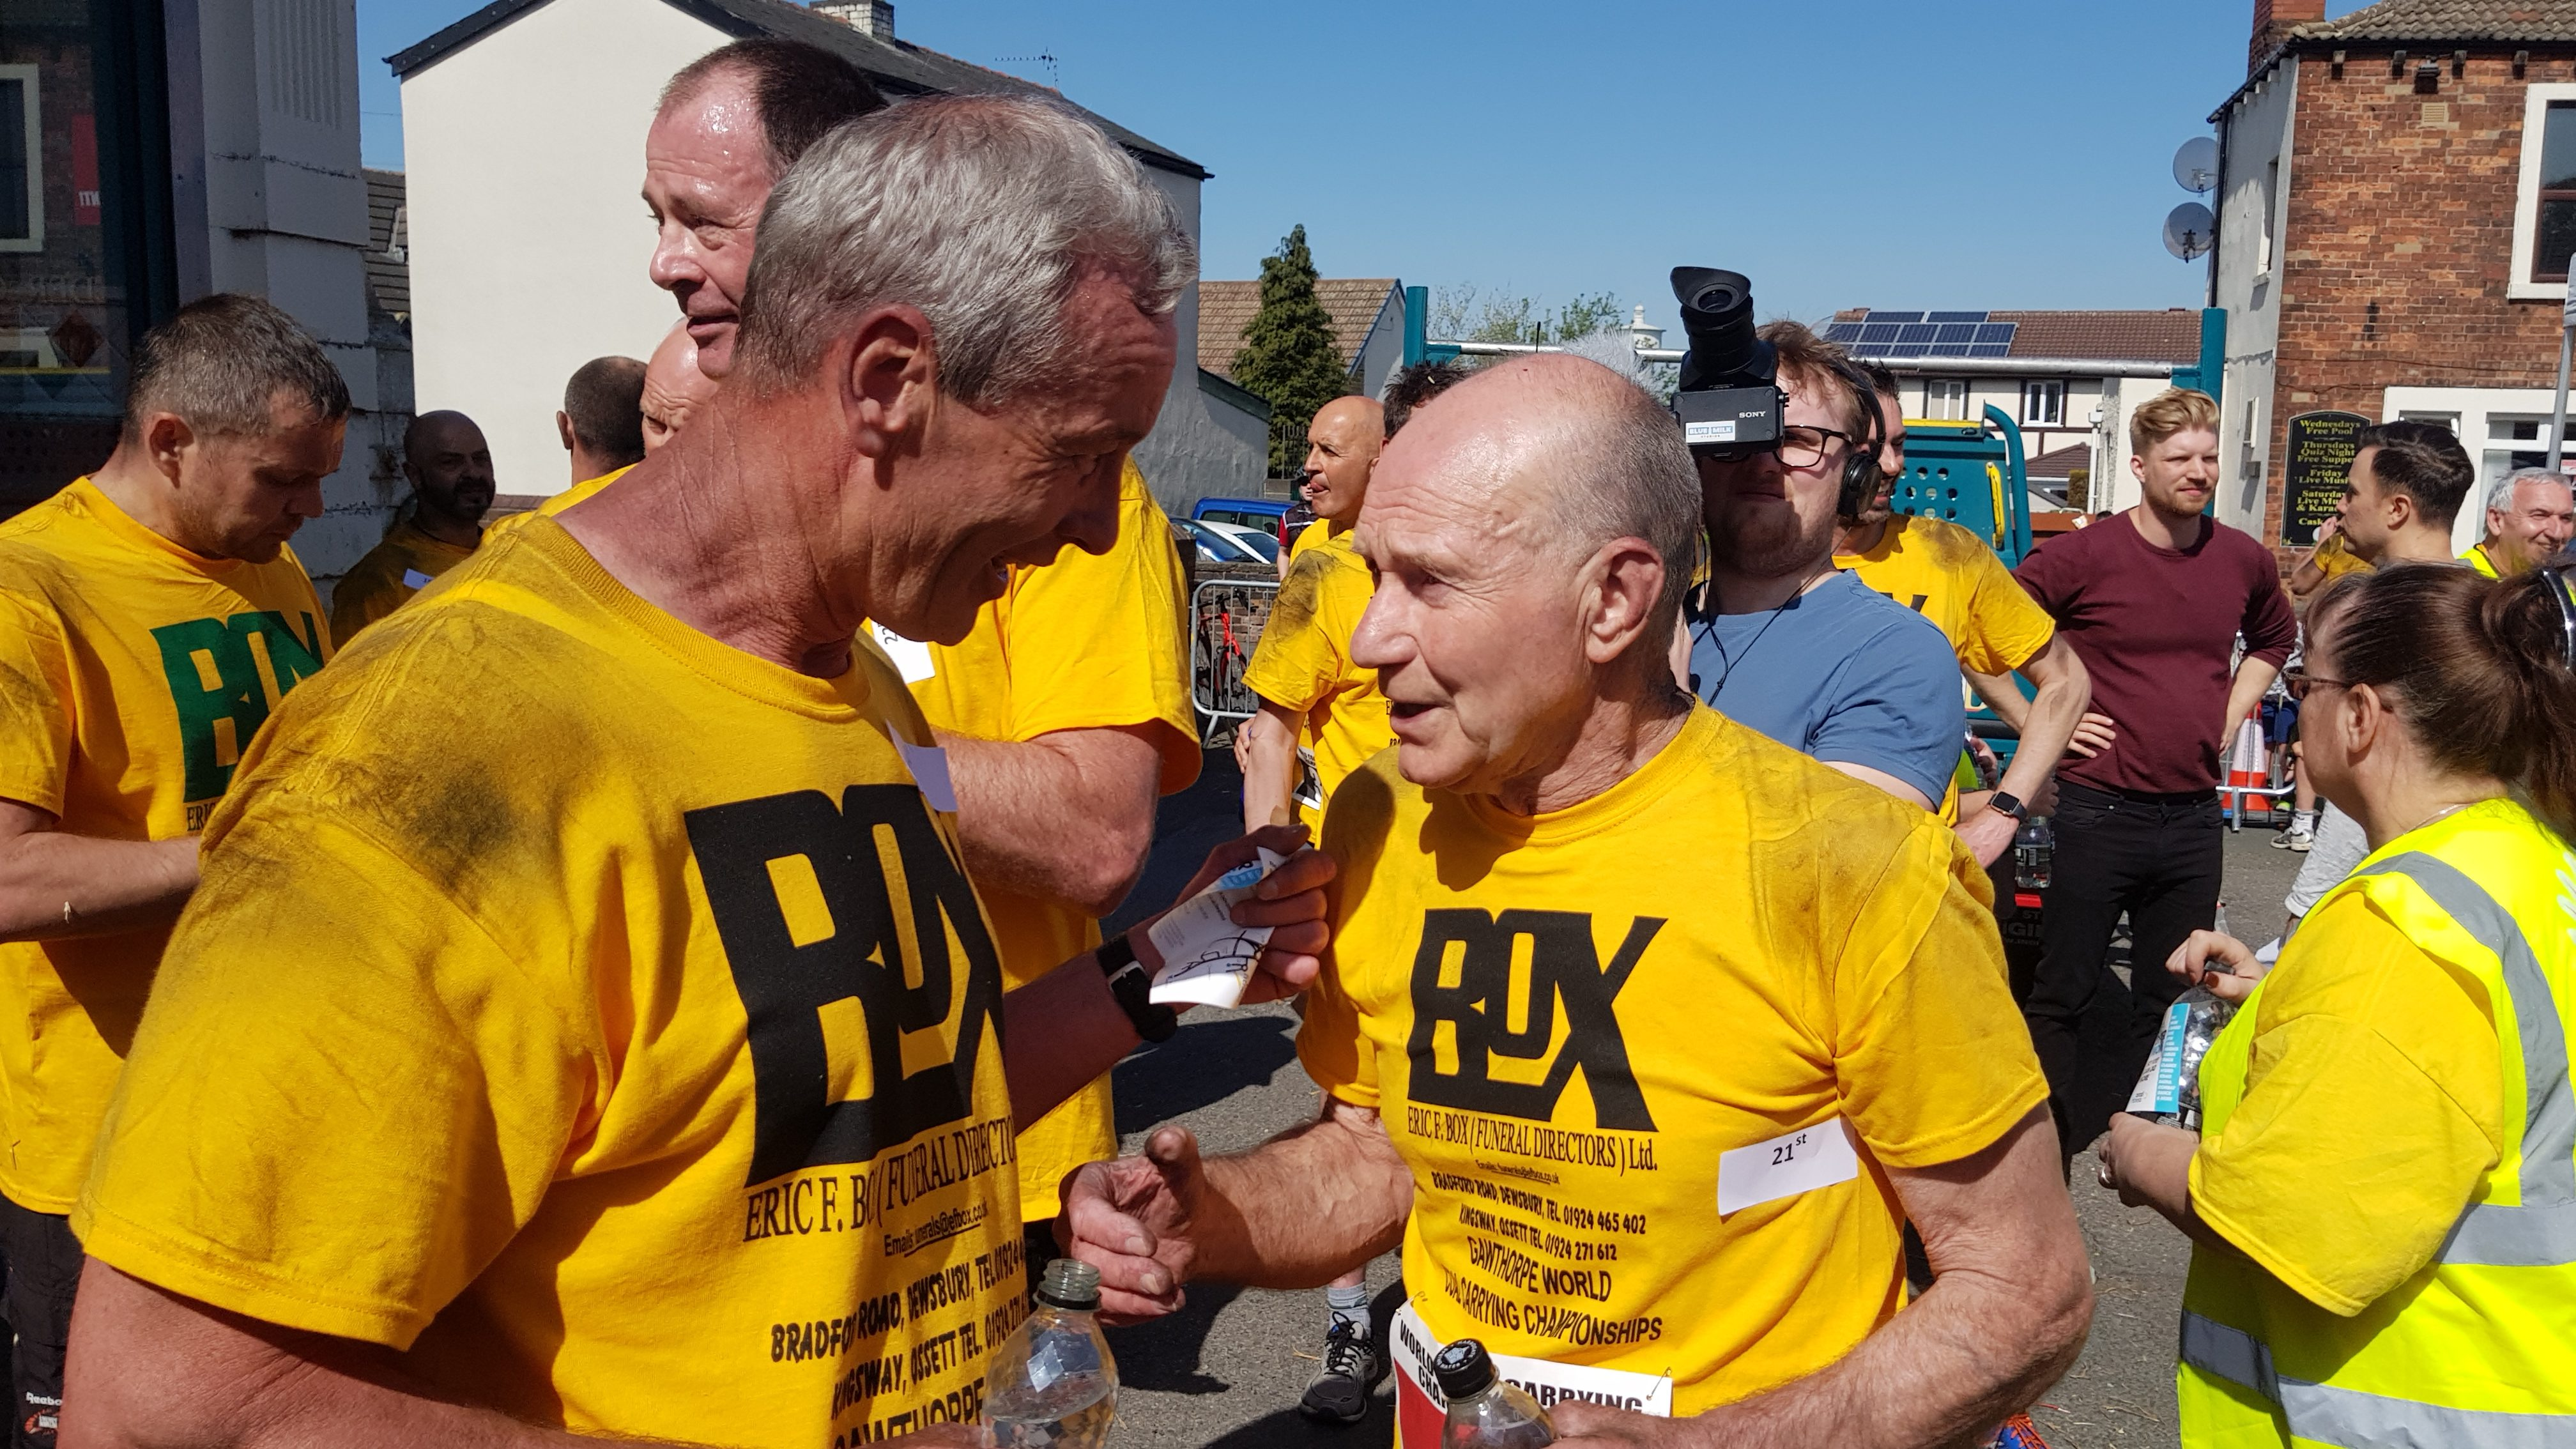 David Page, 72, (right) after winning the race